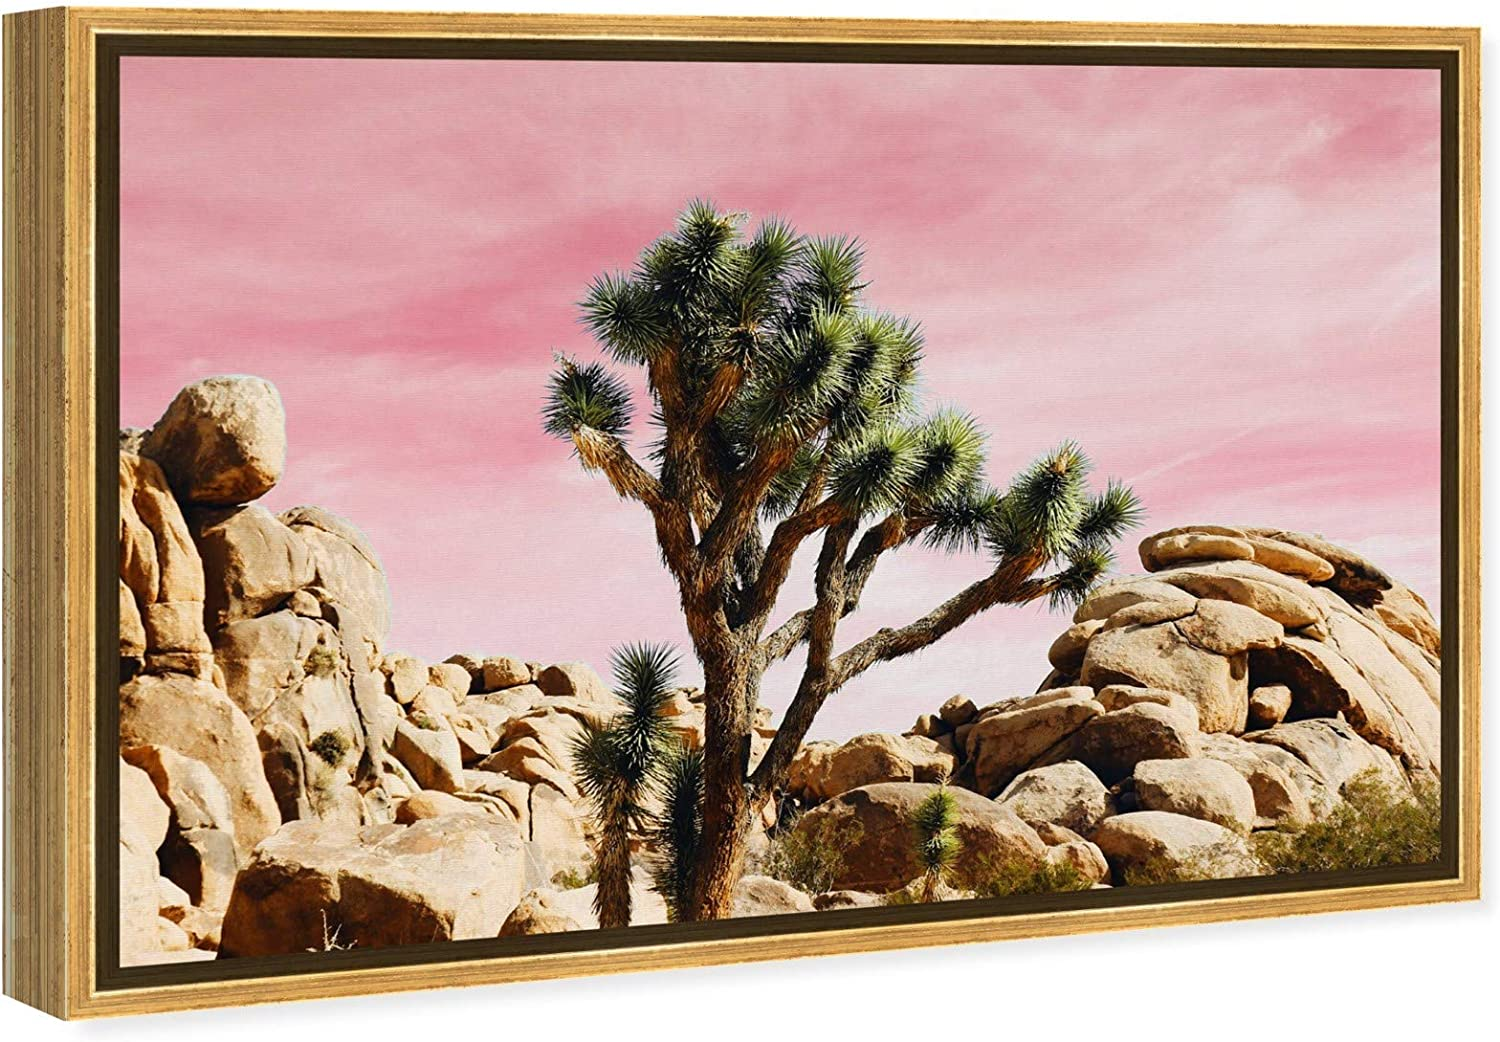 Amazon Com The Oliver Gal Artist Co Nature Framed Wall Art Canvas Prints Joshua Tree Desert Landscapes Home Décor 24 X 16 Pink Green Posters Prints